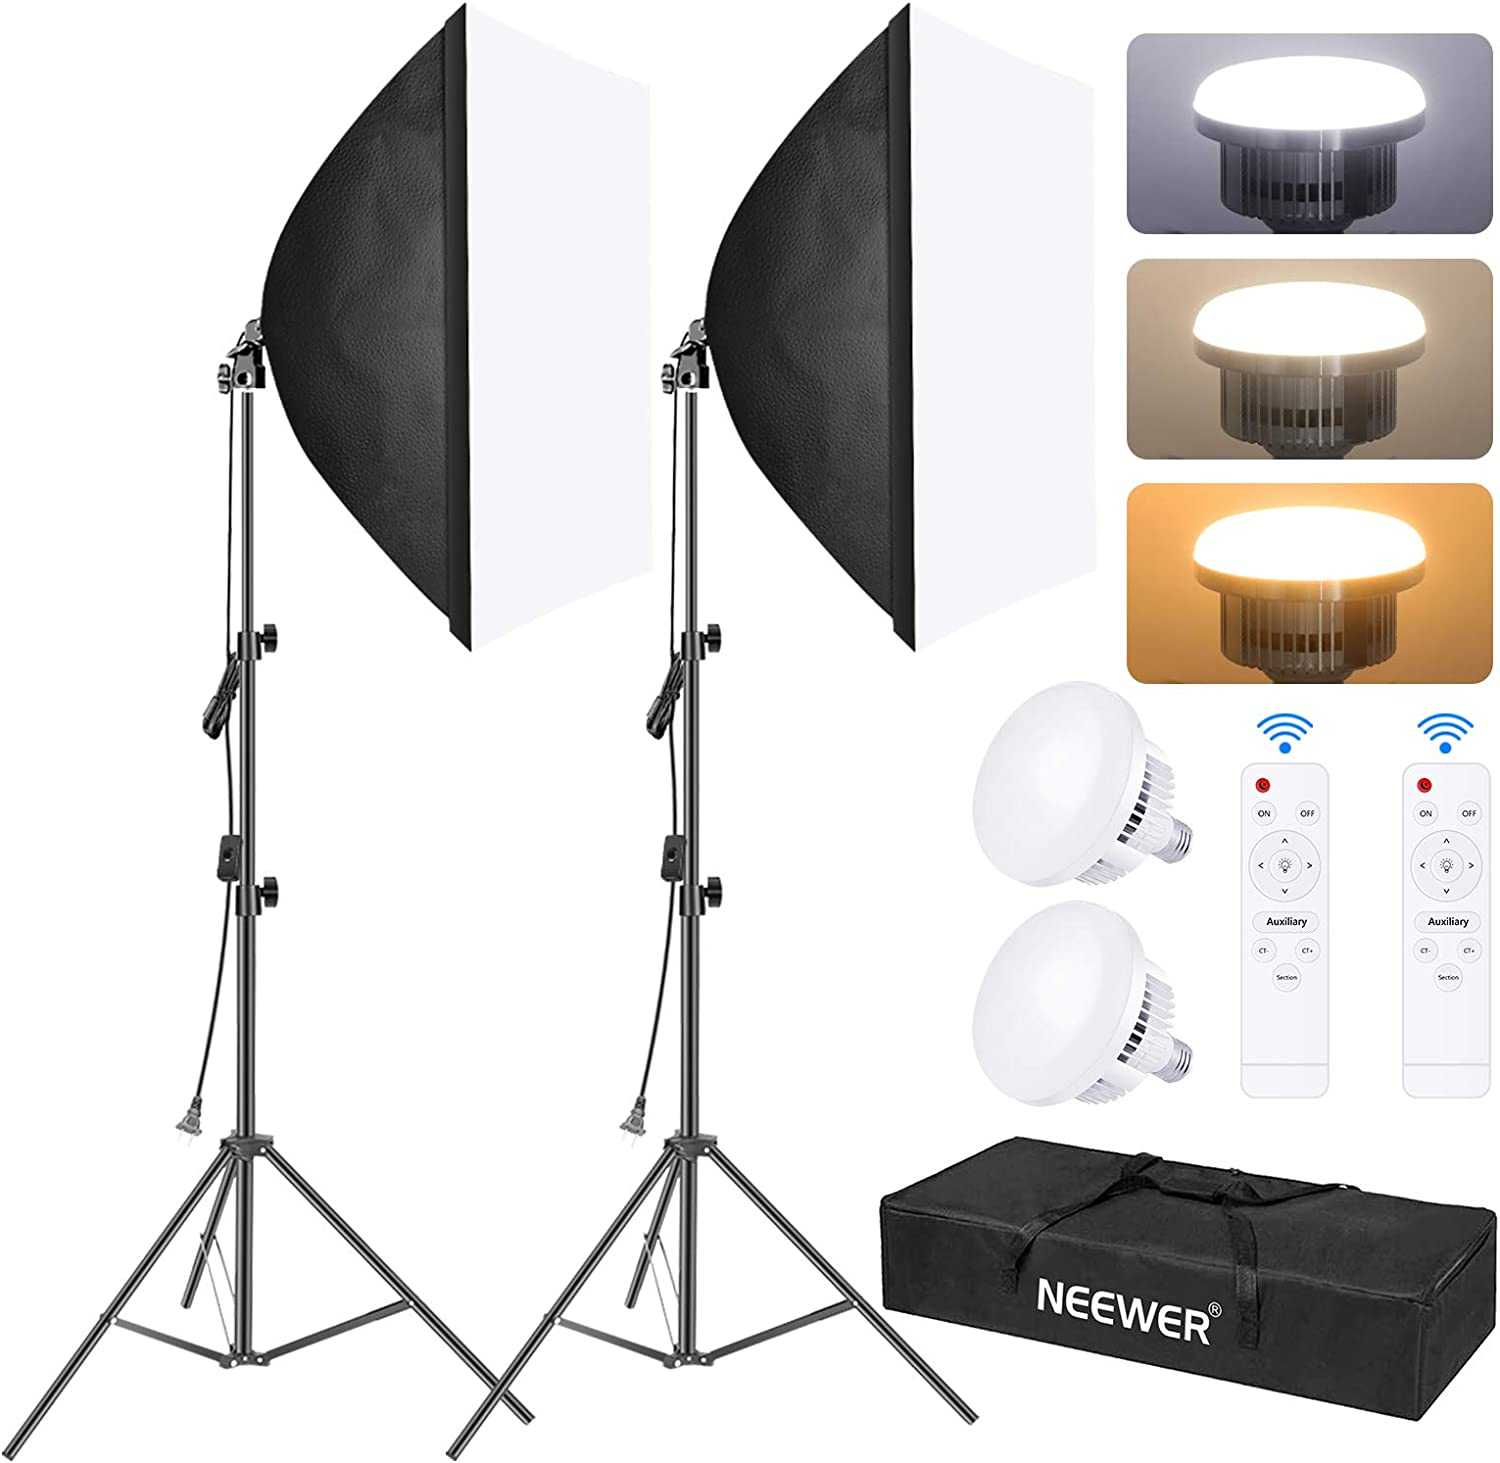 Neewer 2-Pack Softbox Lighting Kit, 23x23inch/60x60cm Soft Box, Photo Studio Continuous Lighting System with 45W LED Bulb, Stand and Remote Control for Photo Studio Portrait Photography,Video Shooting